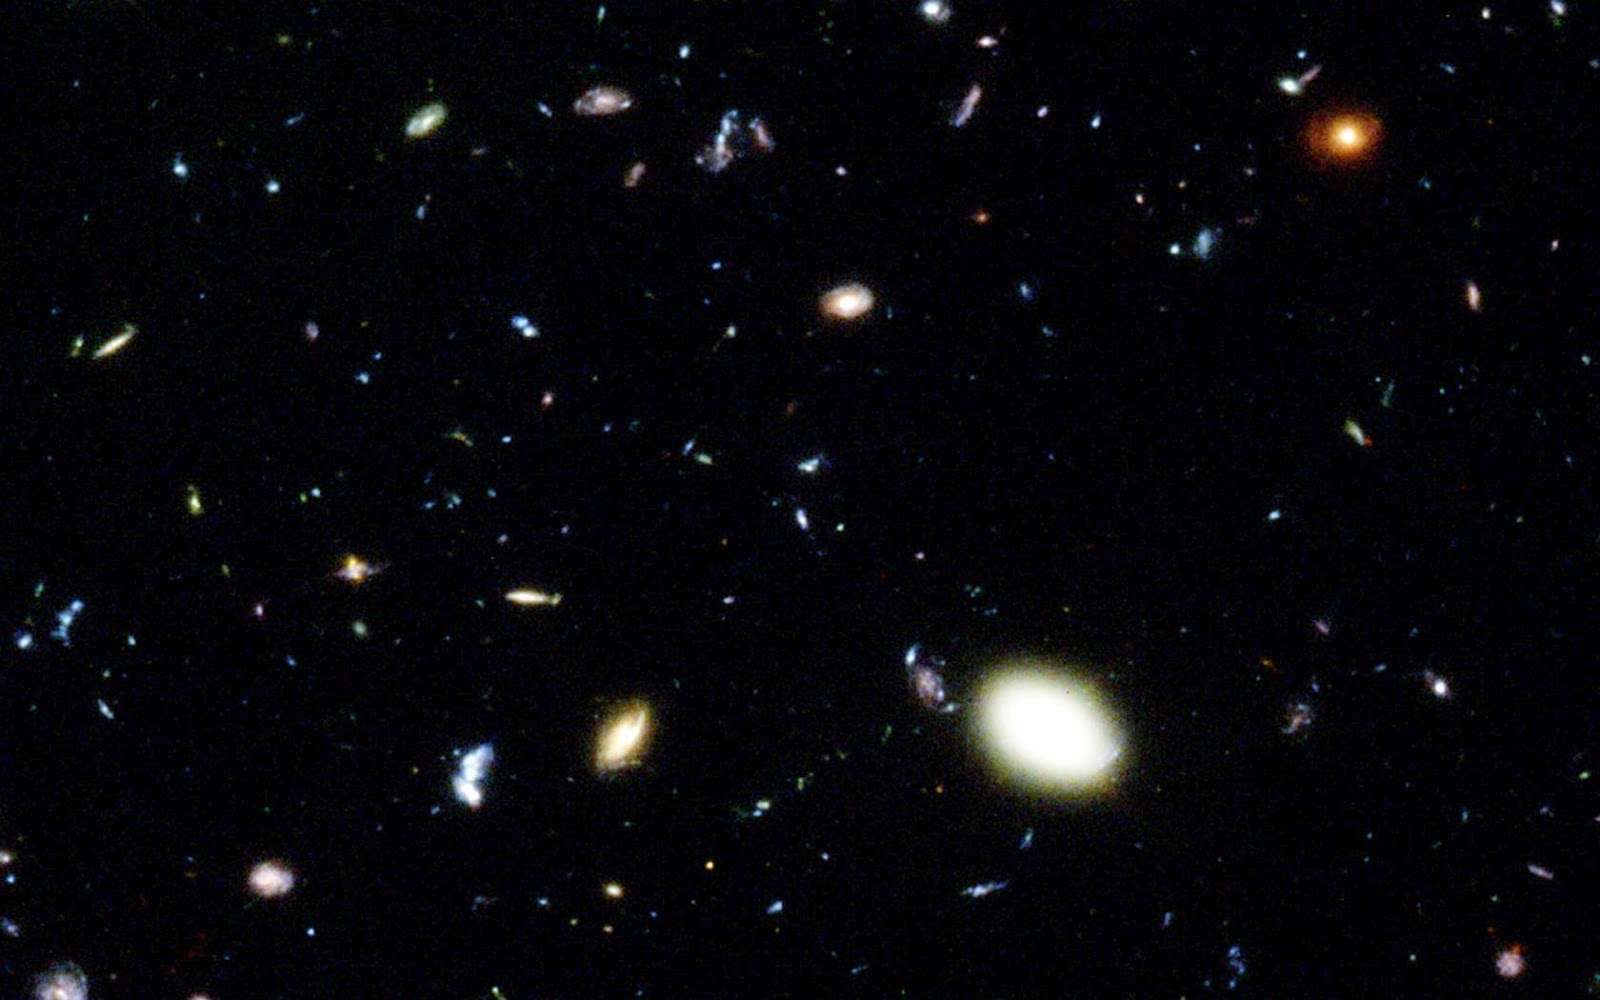 Hubble Deep Field Wallpaper 1440X900 - Pics about space